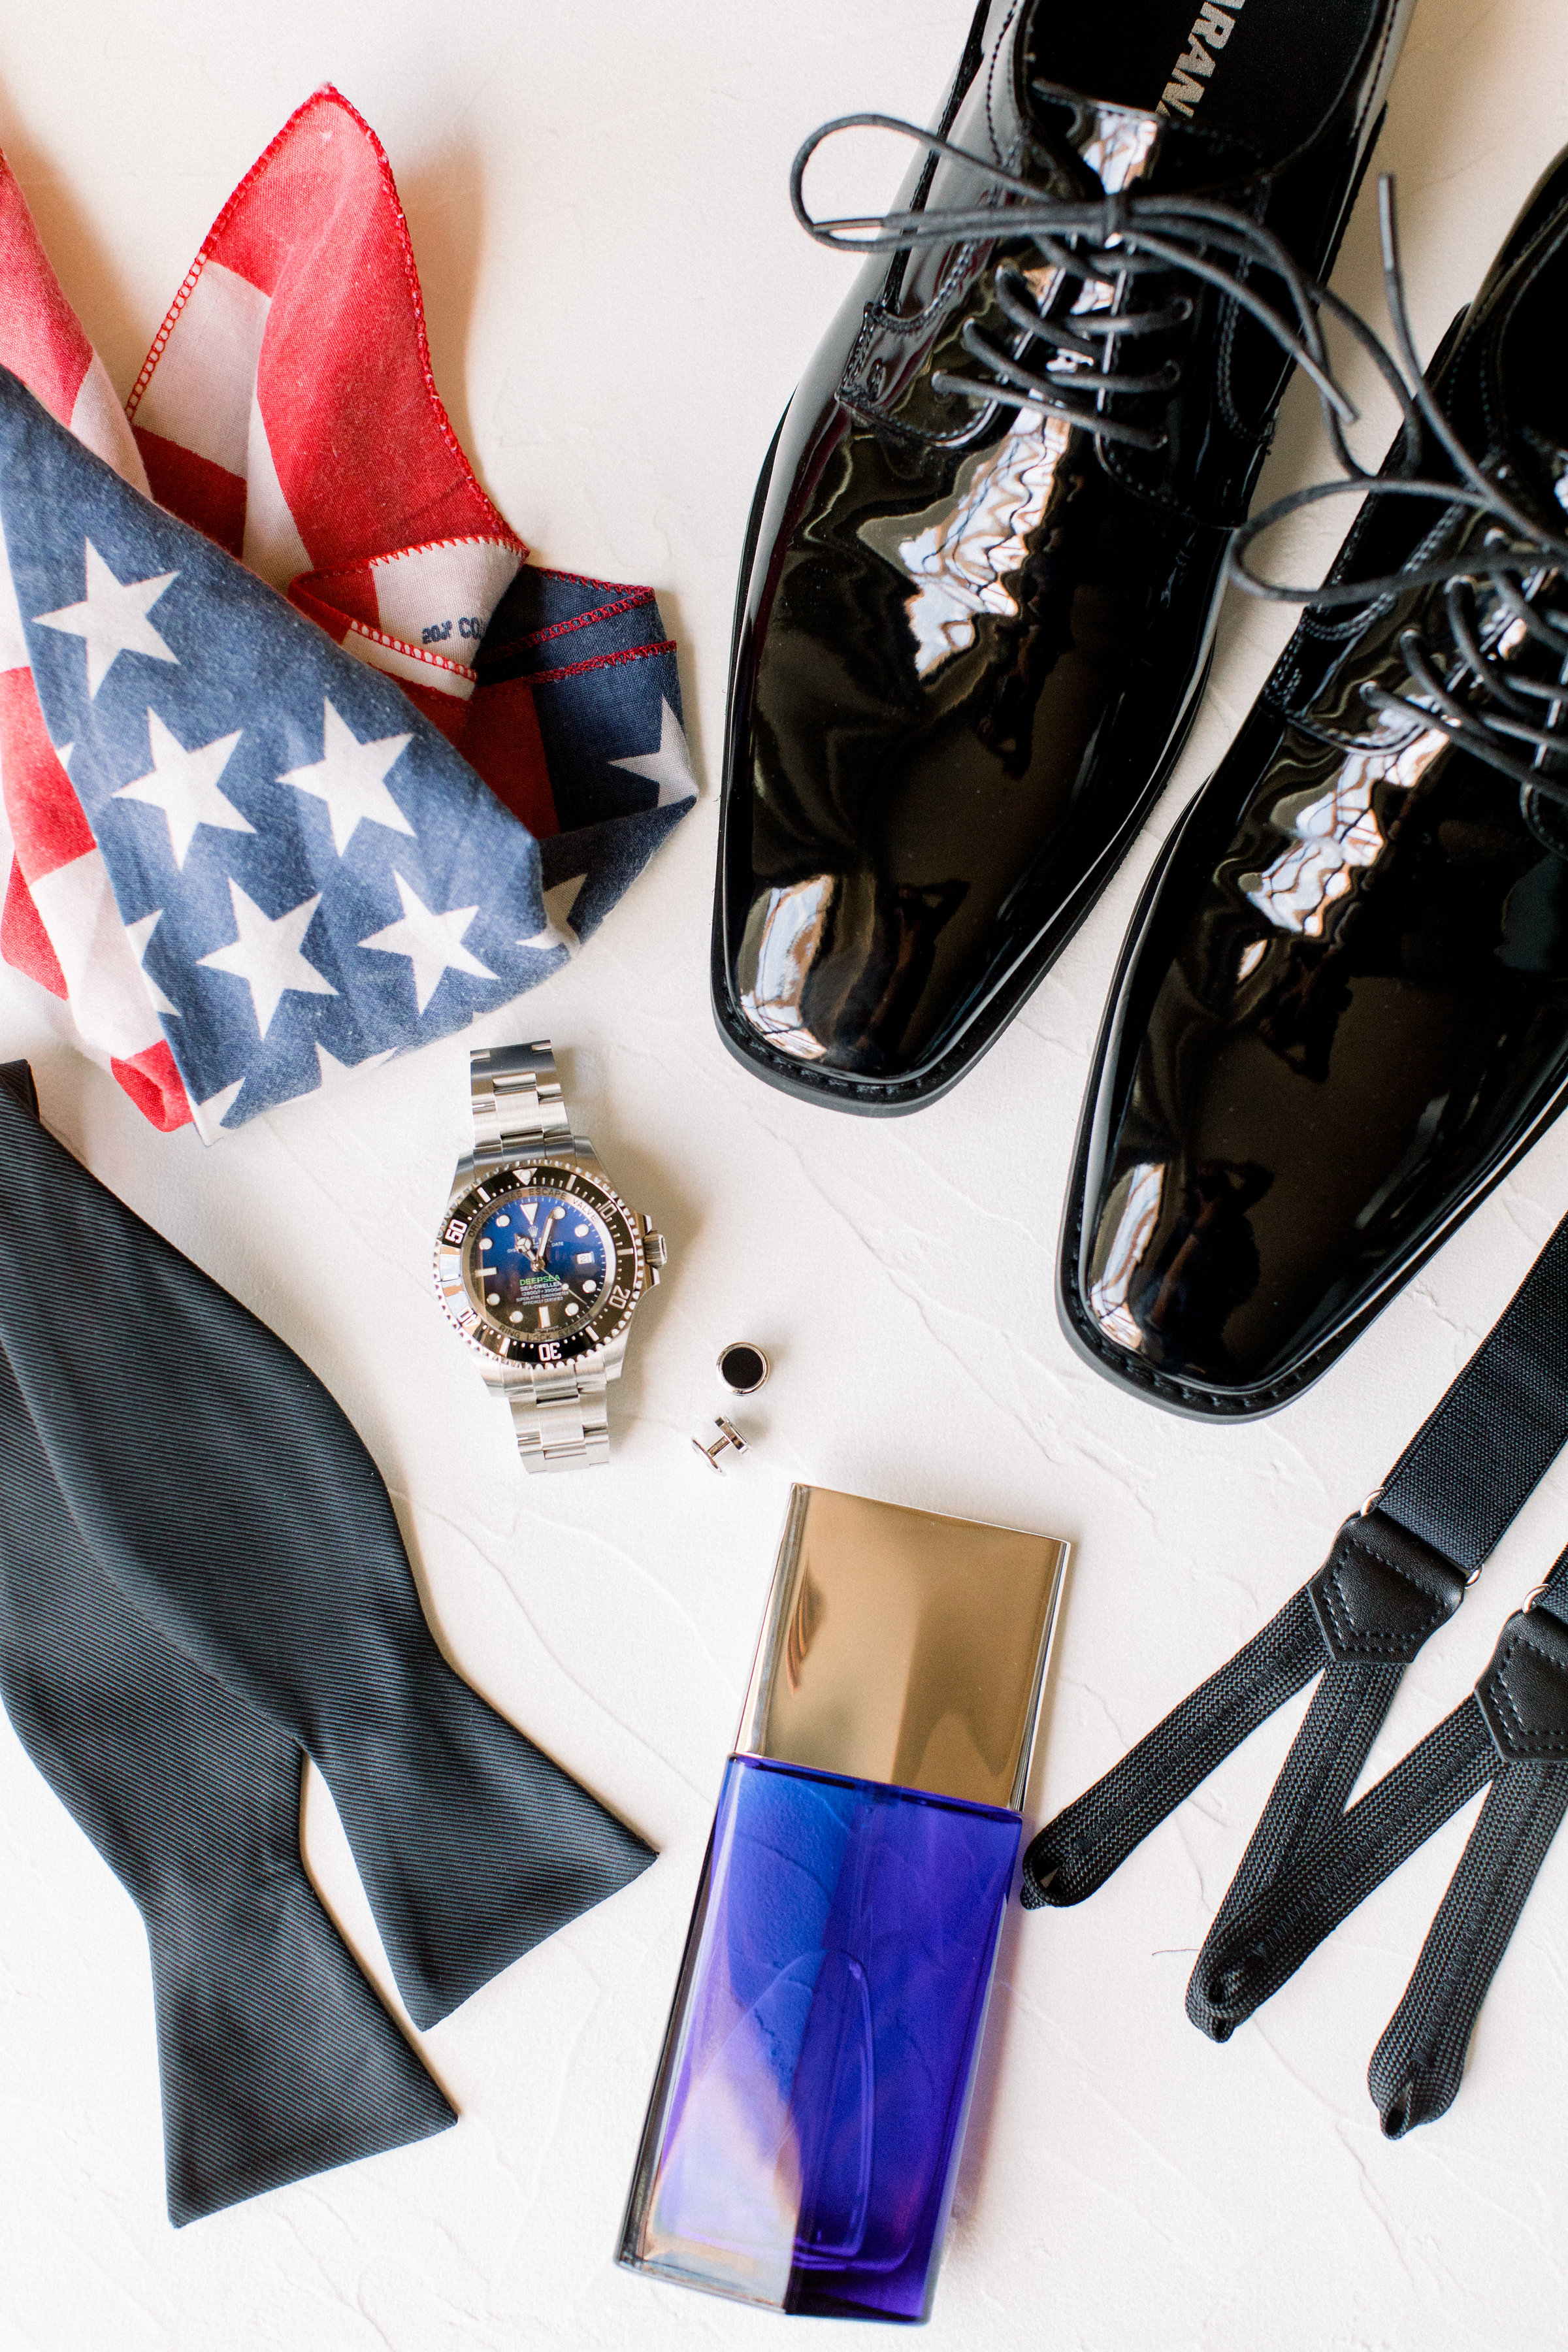 www.santabarbarawedding.com   Jenny Quicksall Photography   Santa Barbara Club   Bluebell Events   The Black Tux   Groom's Accessories and American Flag